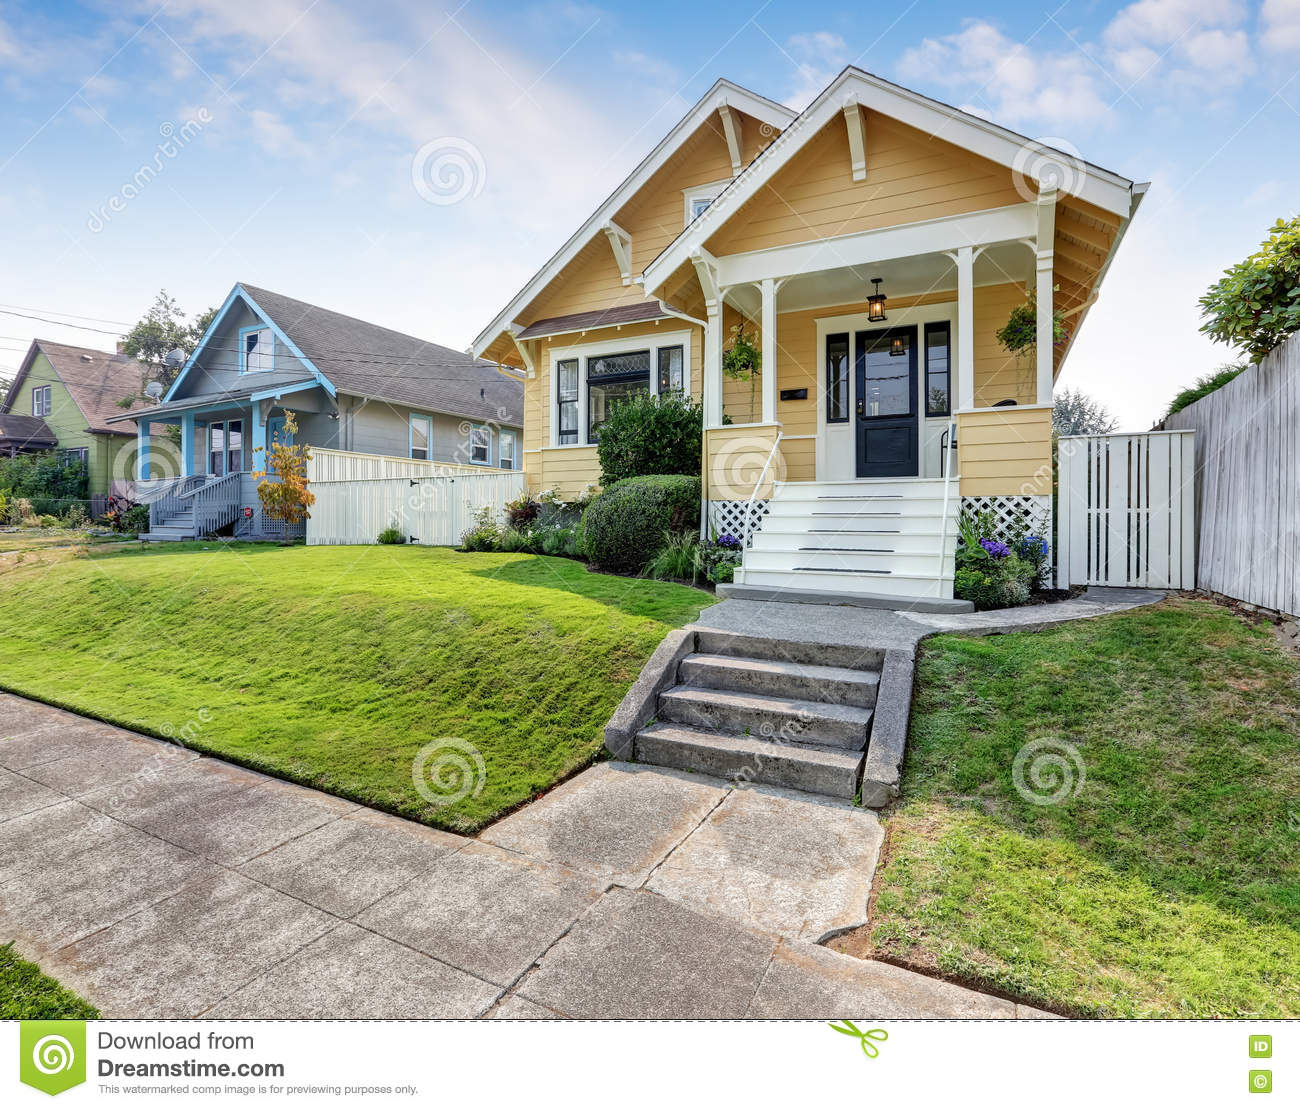 Front Porch Of Yellow House Stock Photo: Home Exterior With Classic Northwest Charm Royalty-Free